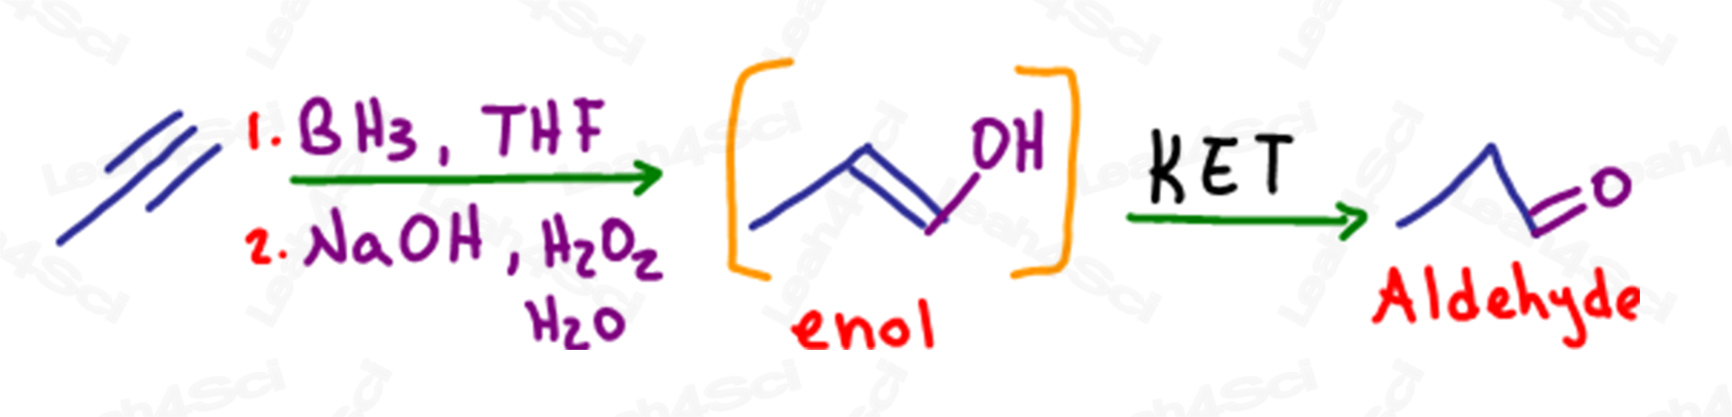 KET in Hydroboration of alkynes with terminal enol intermediate and aldehyde product by Leah4sci